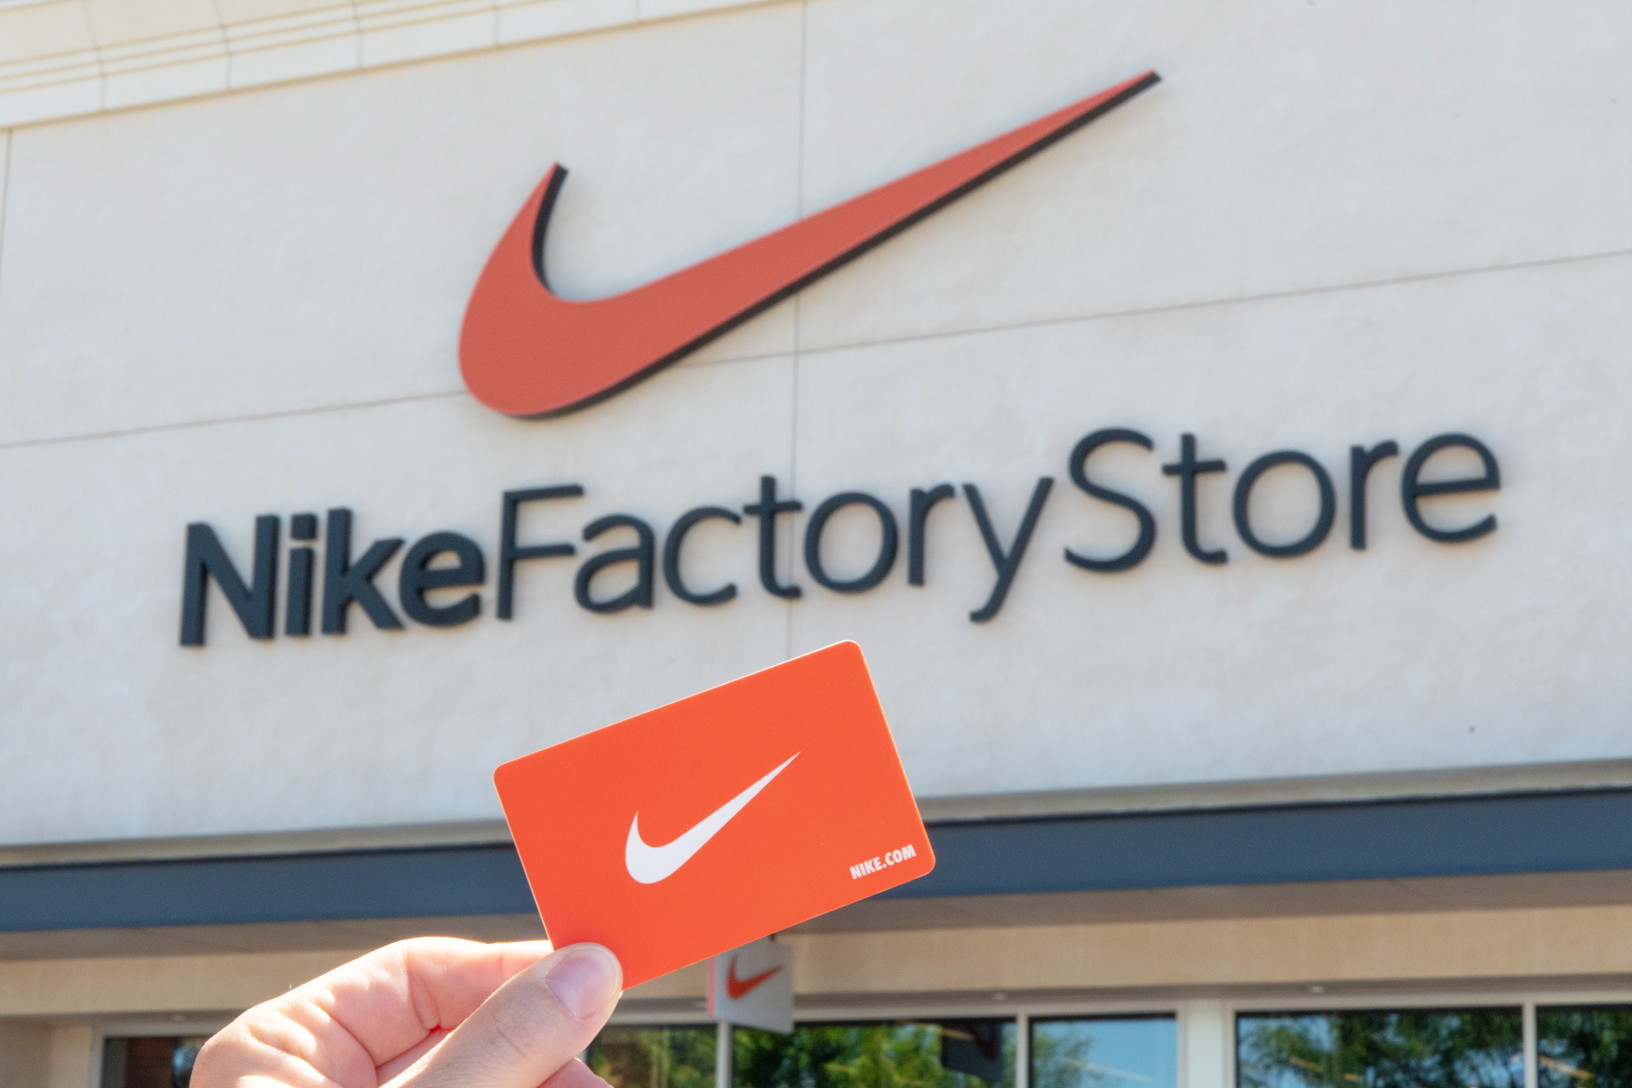 33 Insanely Smart Nike Factory Store Hacks - The Krazy Coupon Lady b9f0461b8513c